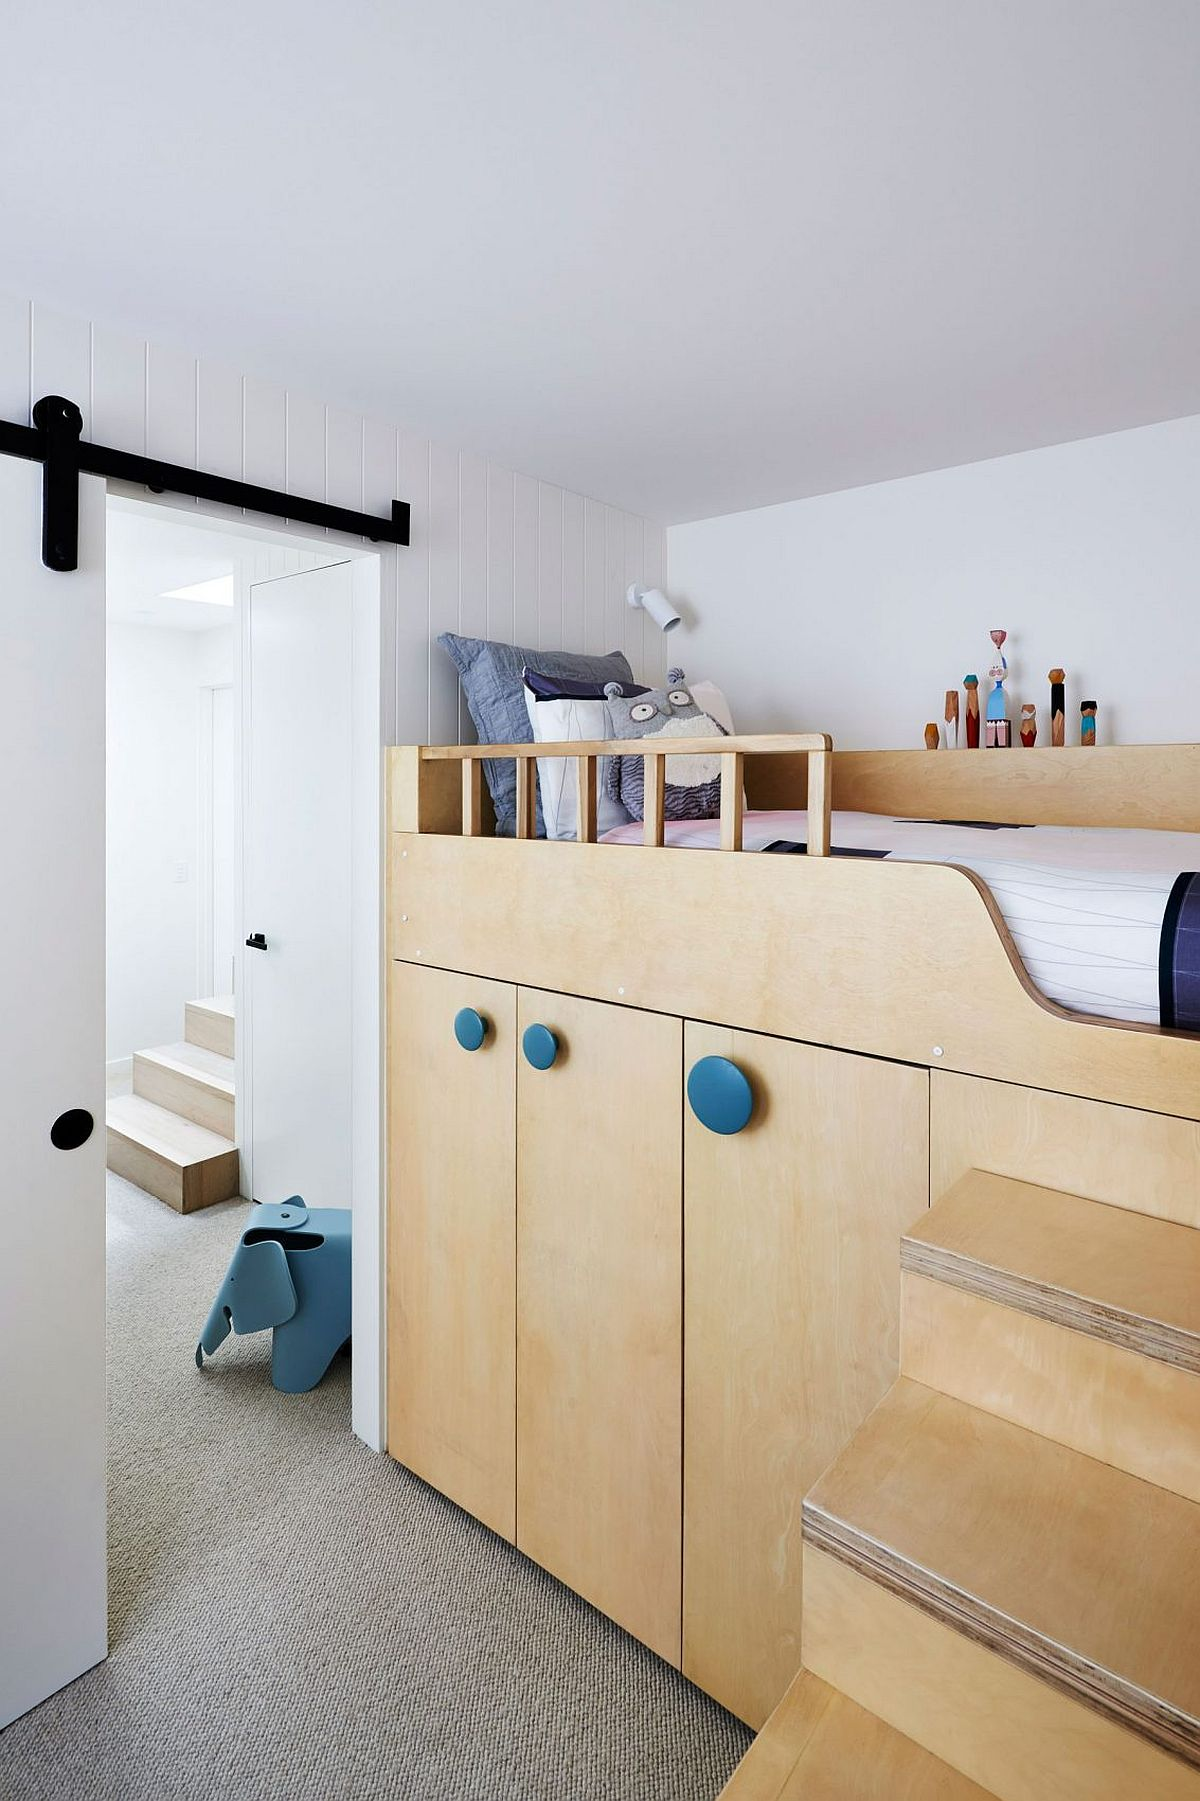 Beautiful and space-savvy loft bed idea for the modern kids' room